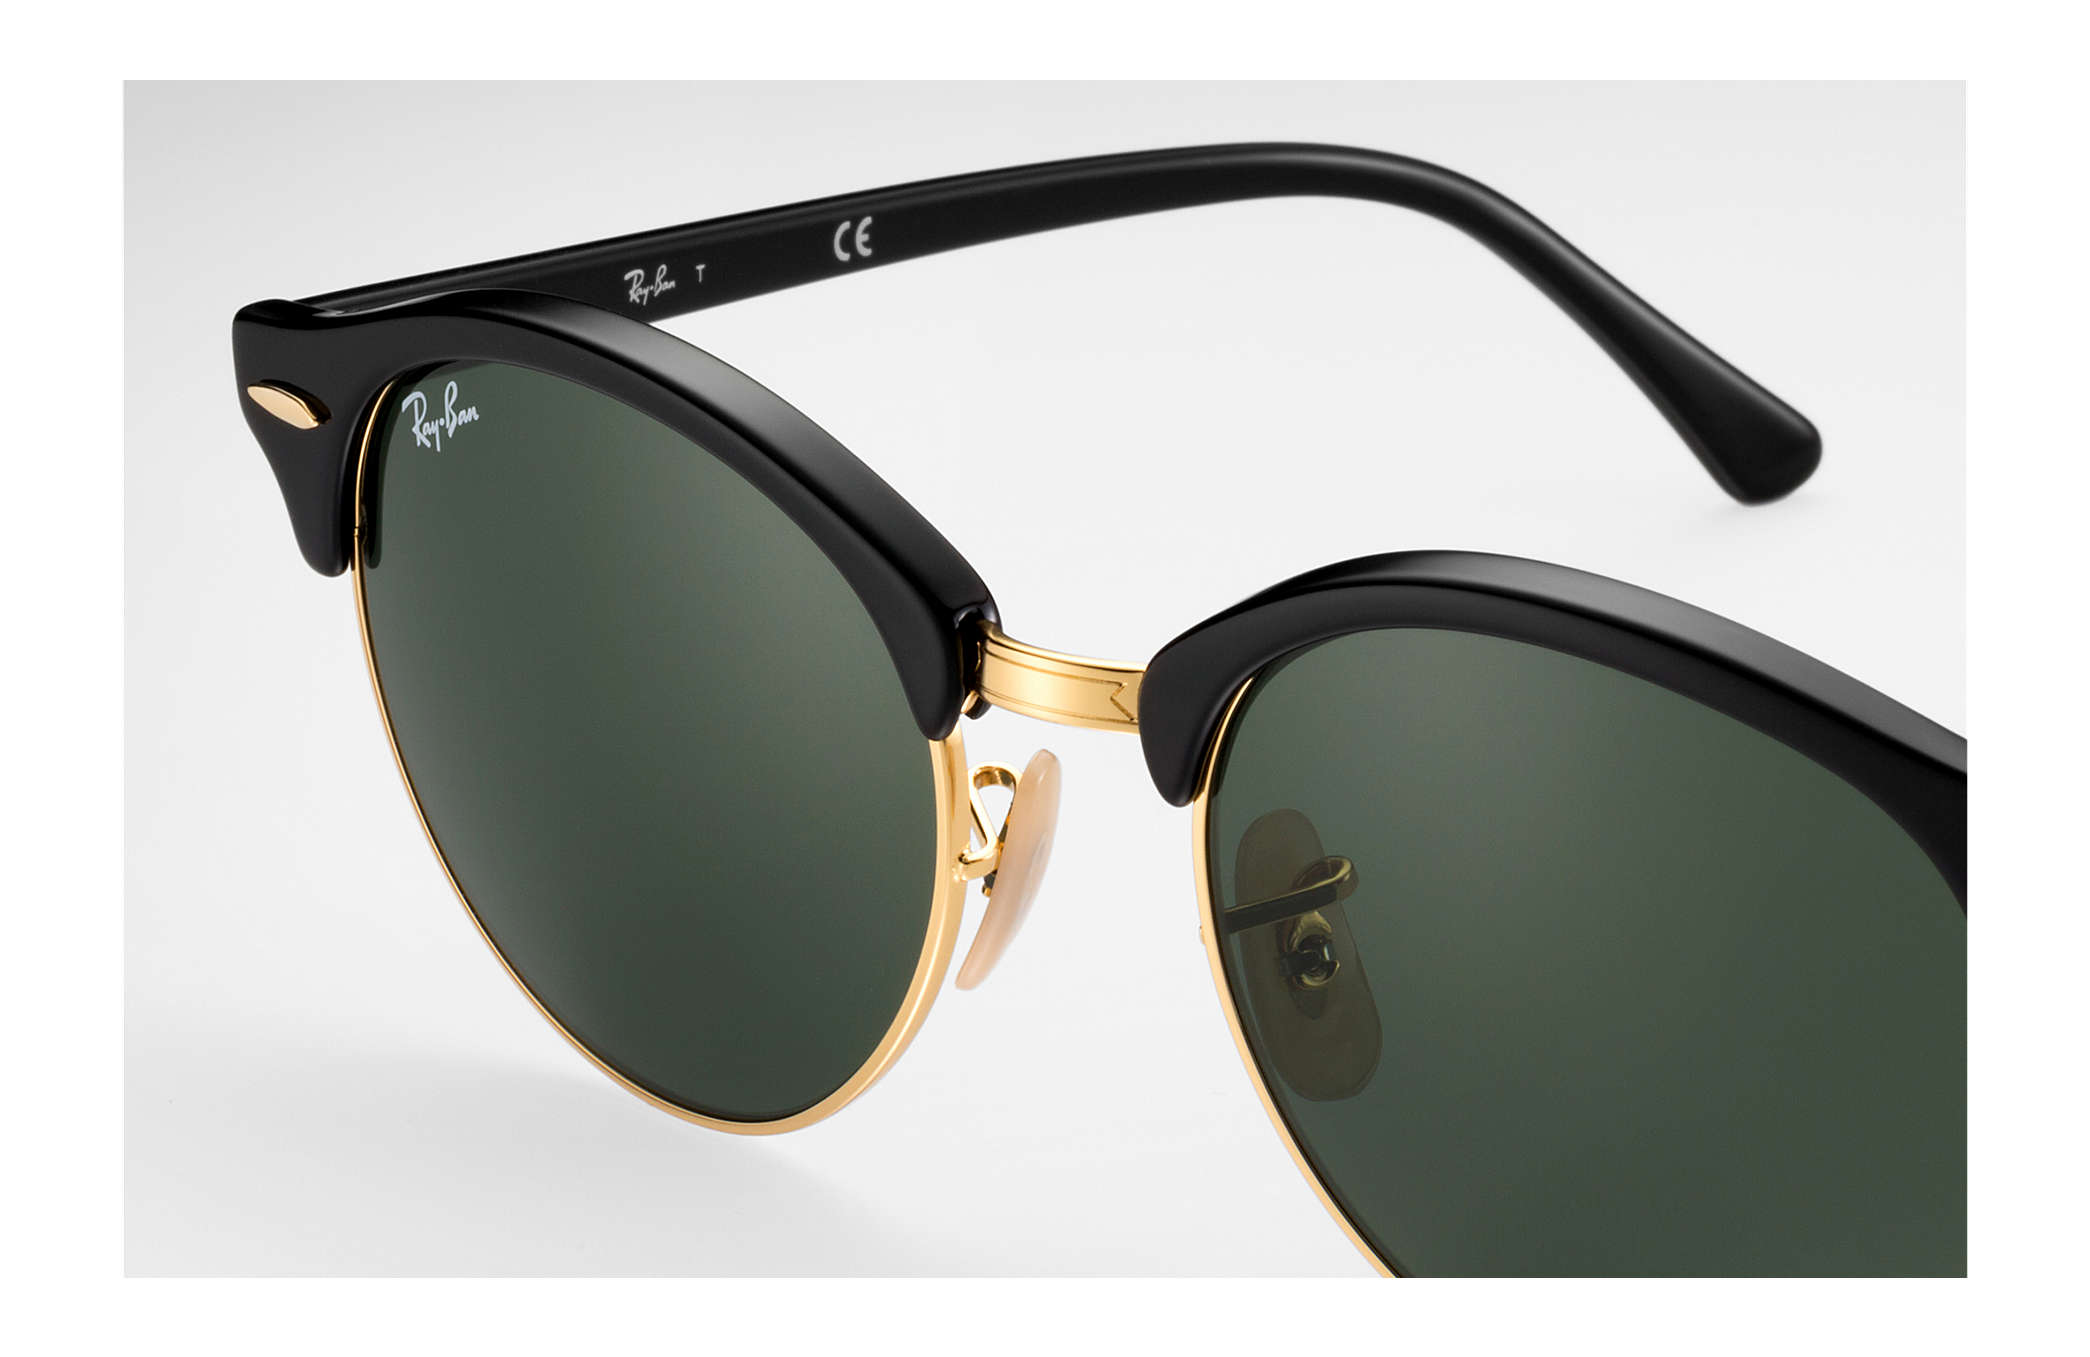 Ray-Ban Clubround RB4246 901 51-19 in shiny black 2x73zr9UO